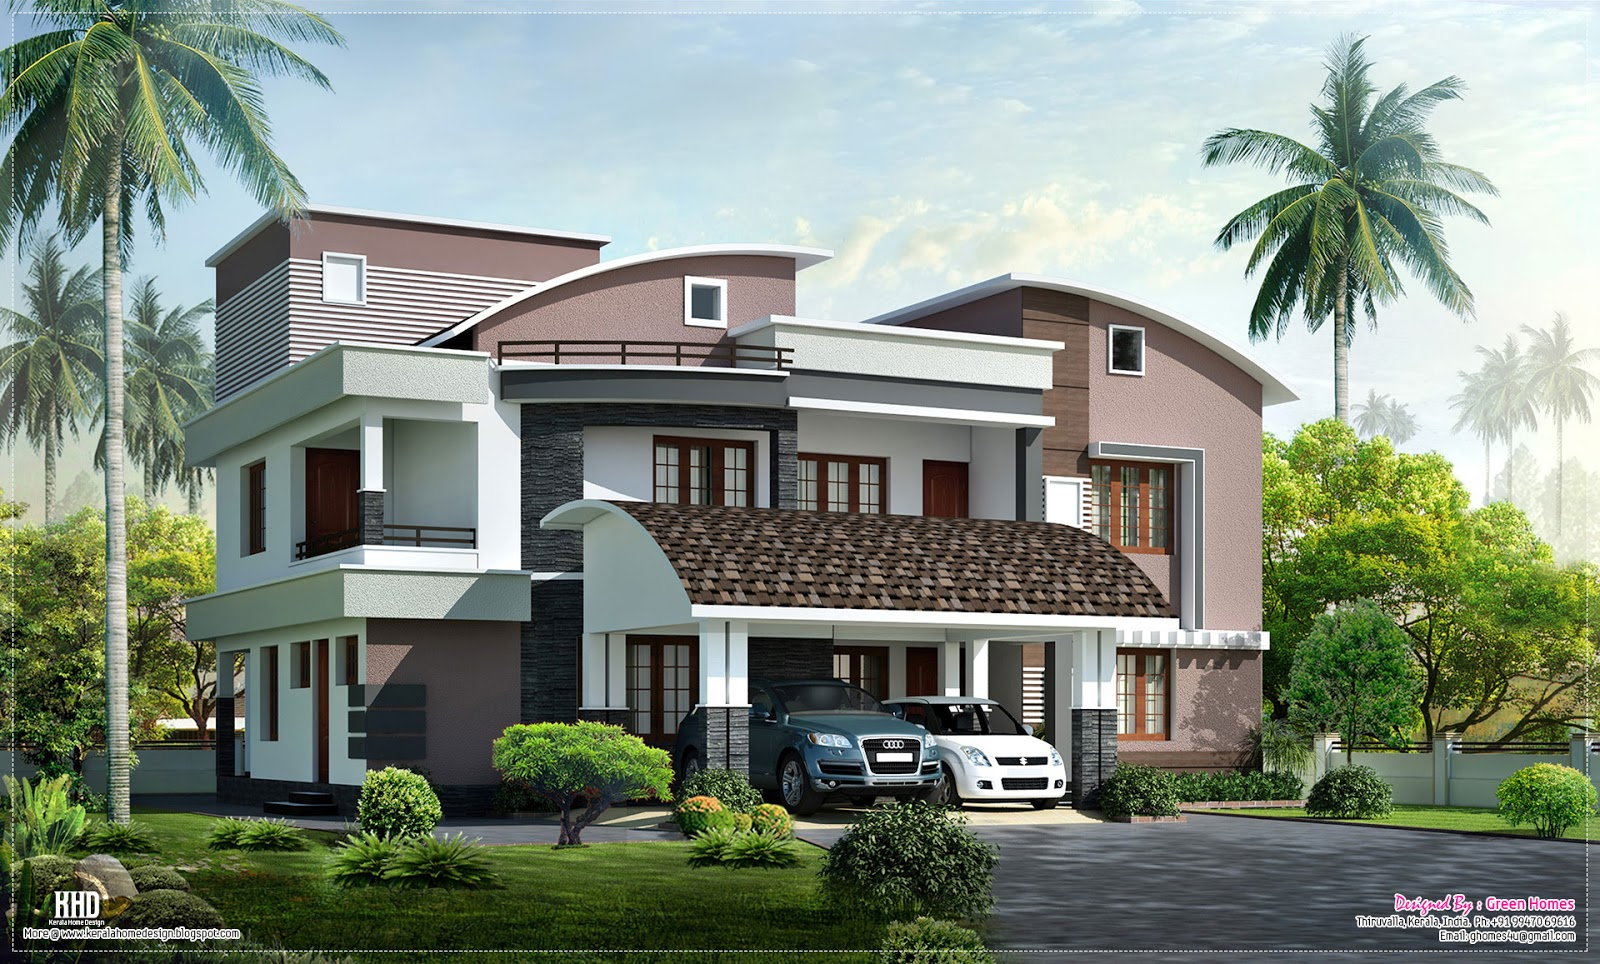 Modern style luxury villa exterior design home kerala plans - Kerala exterior model homes ...